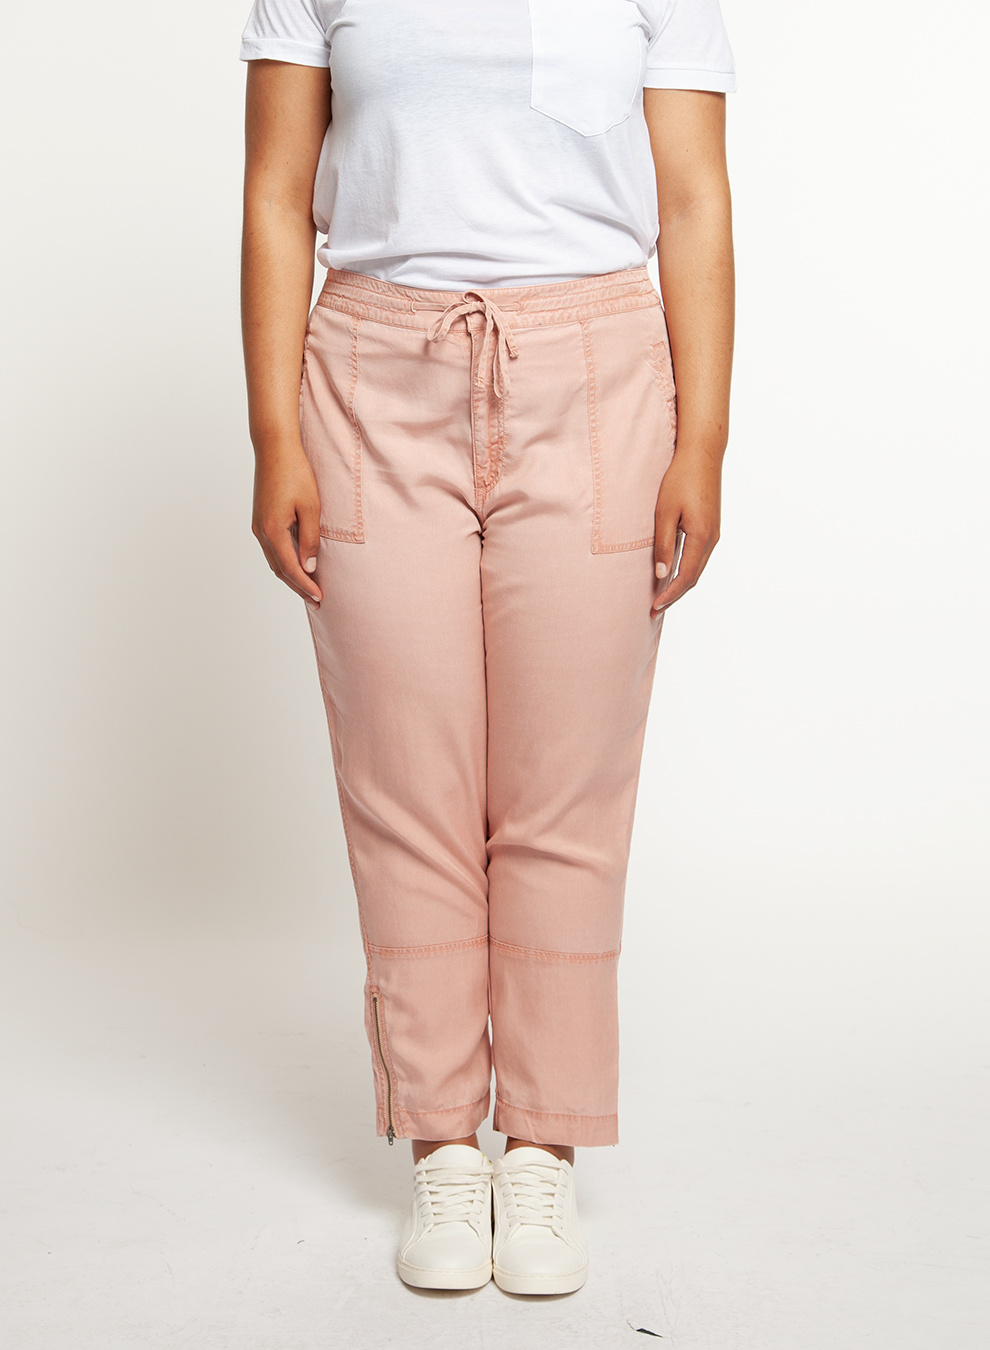 Dex Dex Plus Pink Pants